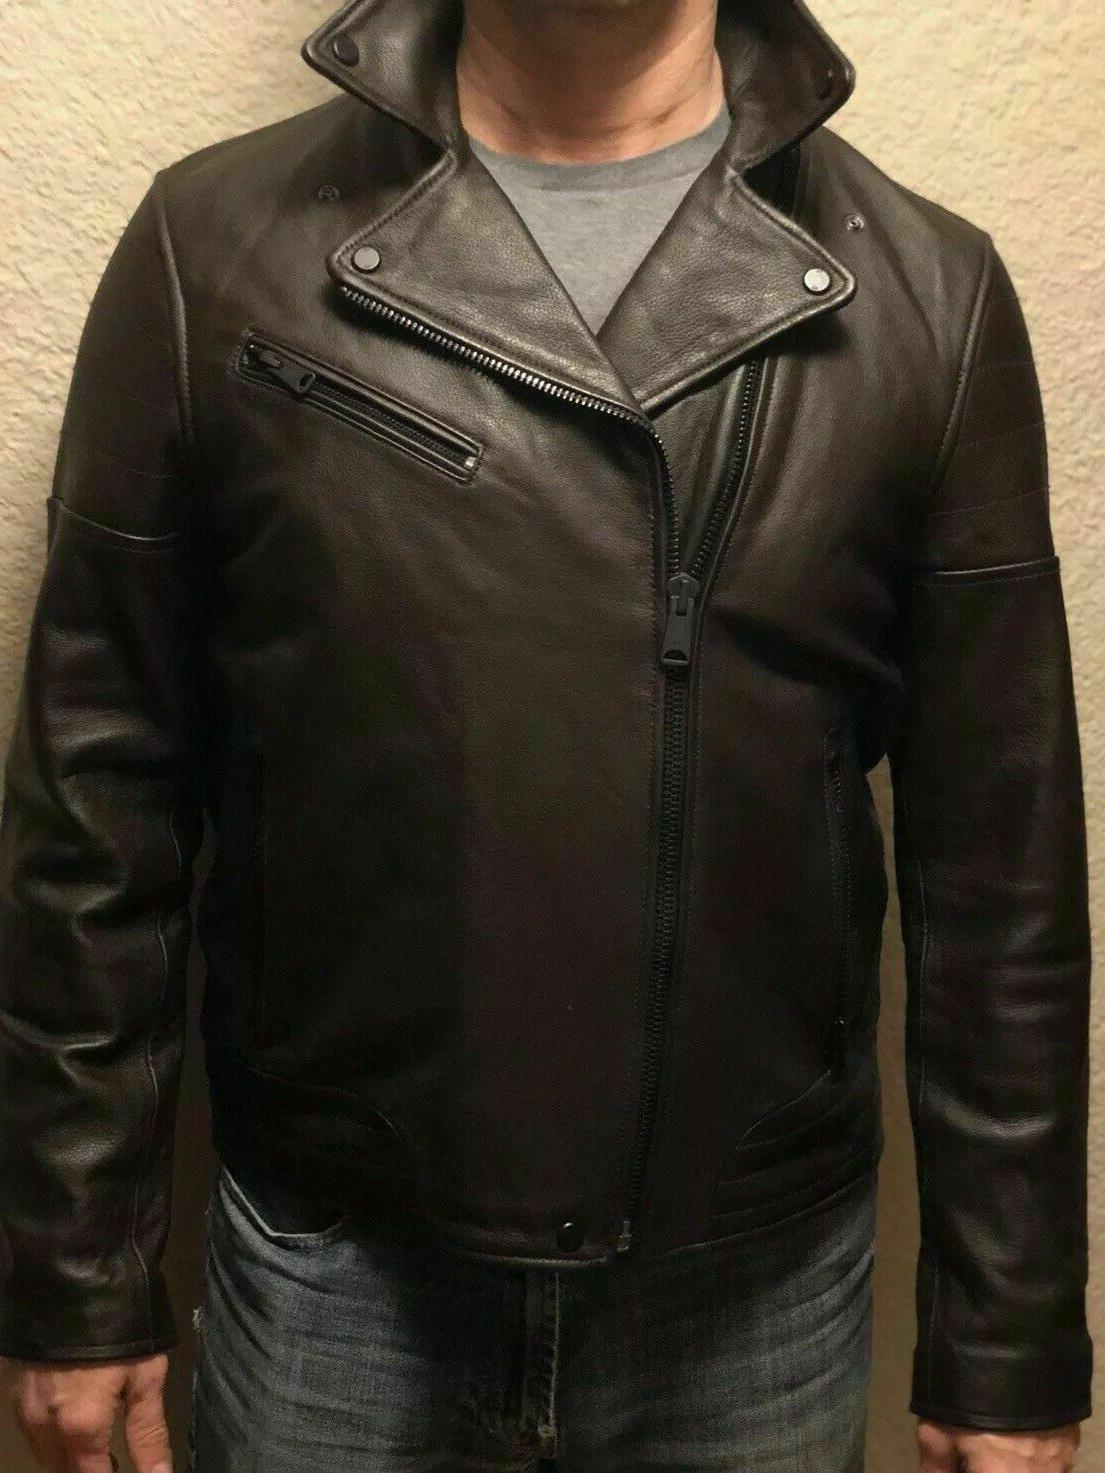 NWT TOMMY MEN'S FALL BROWN LEATHER JACKET XXL Retail